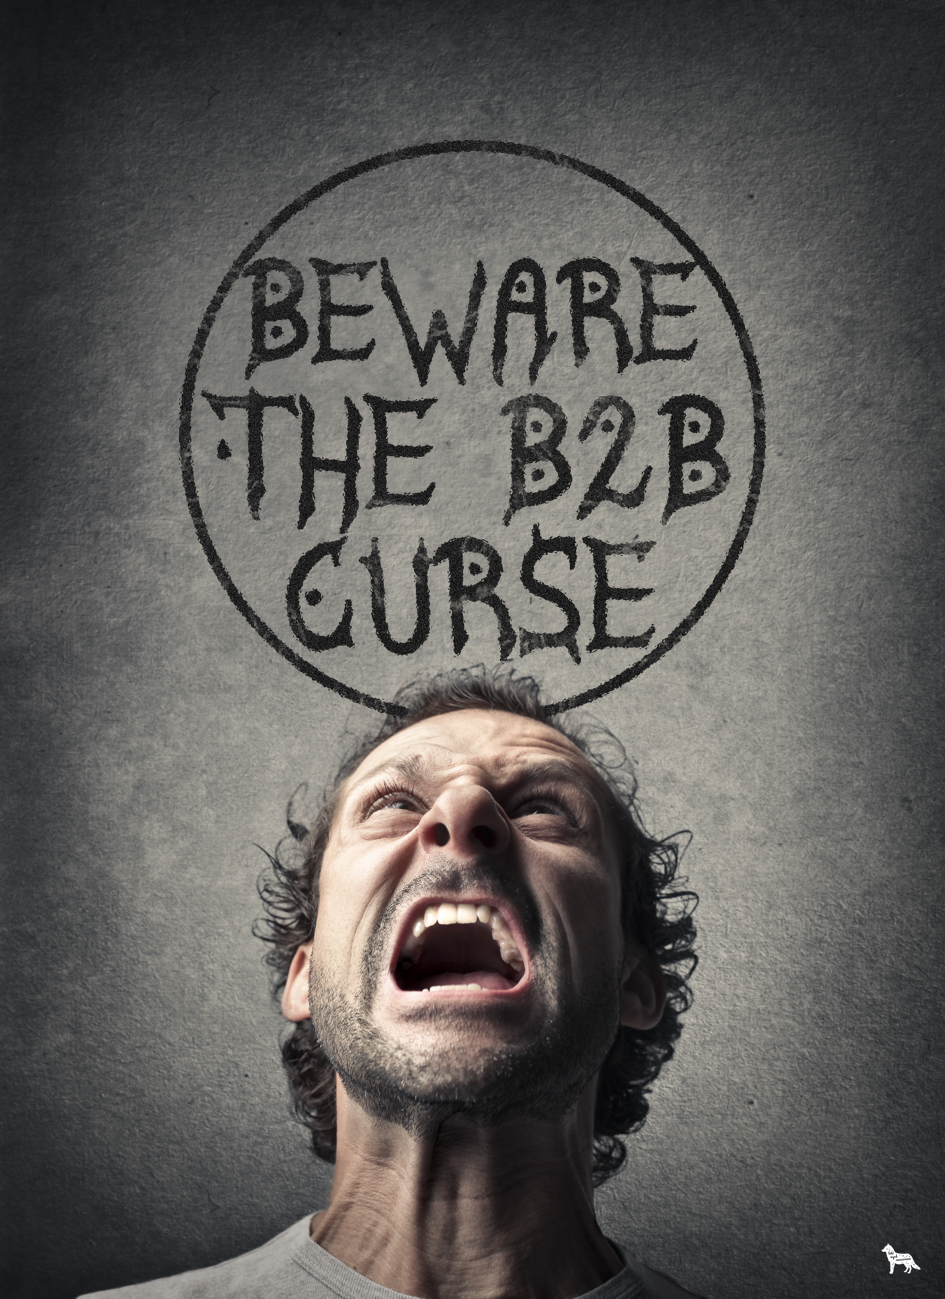 Beware the B2B marketing curse - the curse of knowledge